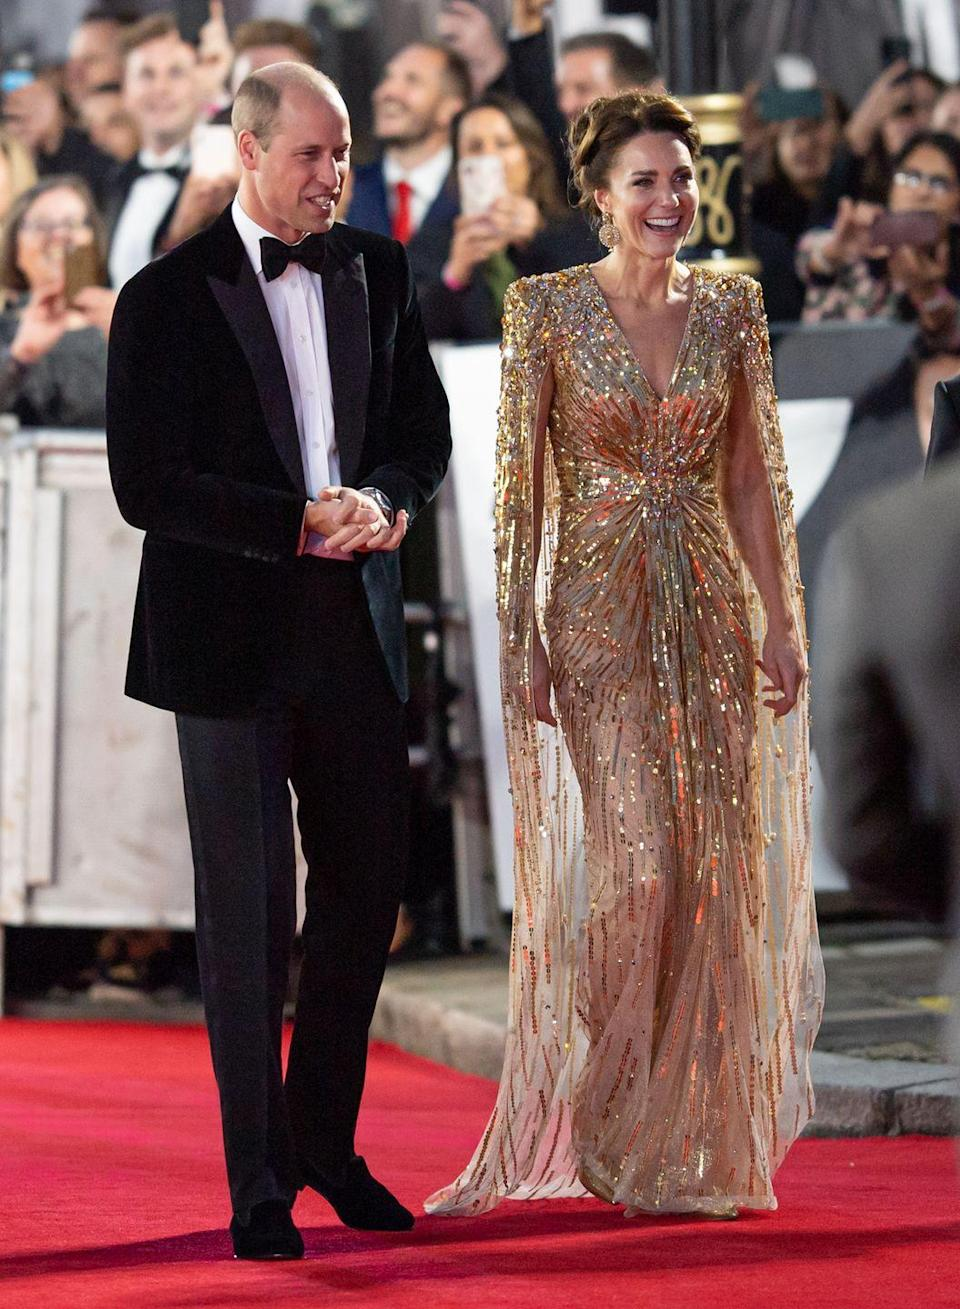 """<p>The Duchess of Cambridge stunned in a <a href=""""https://www.townandcountrymag.com/society/tradition/a37710183/kate-middleton-james-bond-premiere-gold-dress-photos/"""" rel=""""nofollow noopener"""" target=""""_blank"""" data-ylk=""""slk:gold, embellished Jenny Packham gown"""" class=""""link rapid-noclick-resp"""">gold, embellished Jenny Packham gown</a>, complete with an attached cape. </p>"""